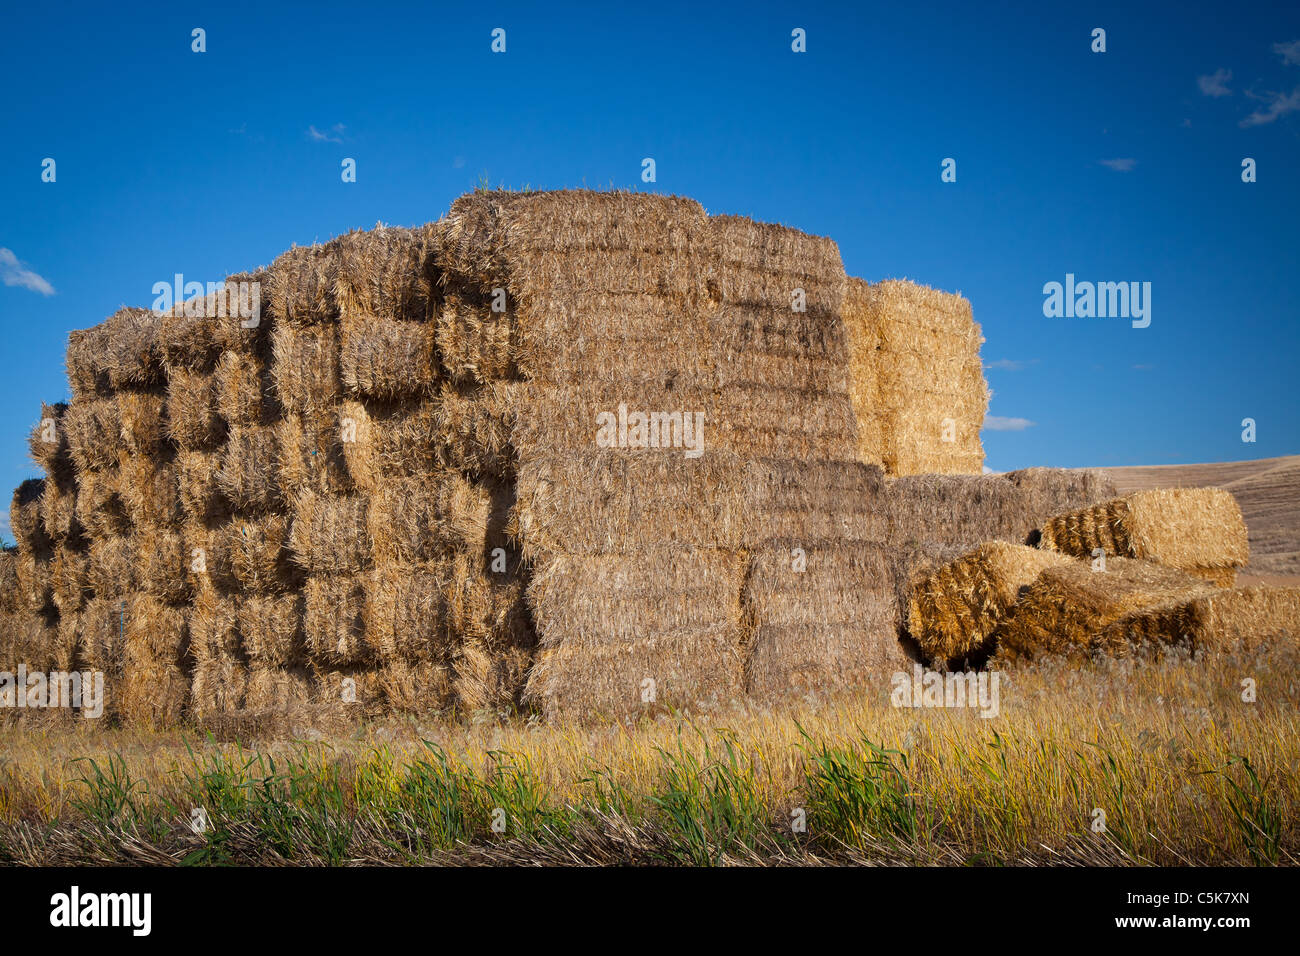 Hay bales near the town of Palouse in the agricultural area of The Palouse in eastern Washington state. - Stock Image